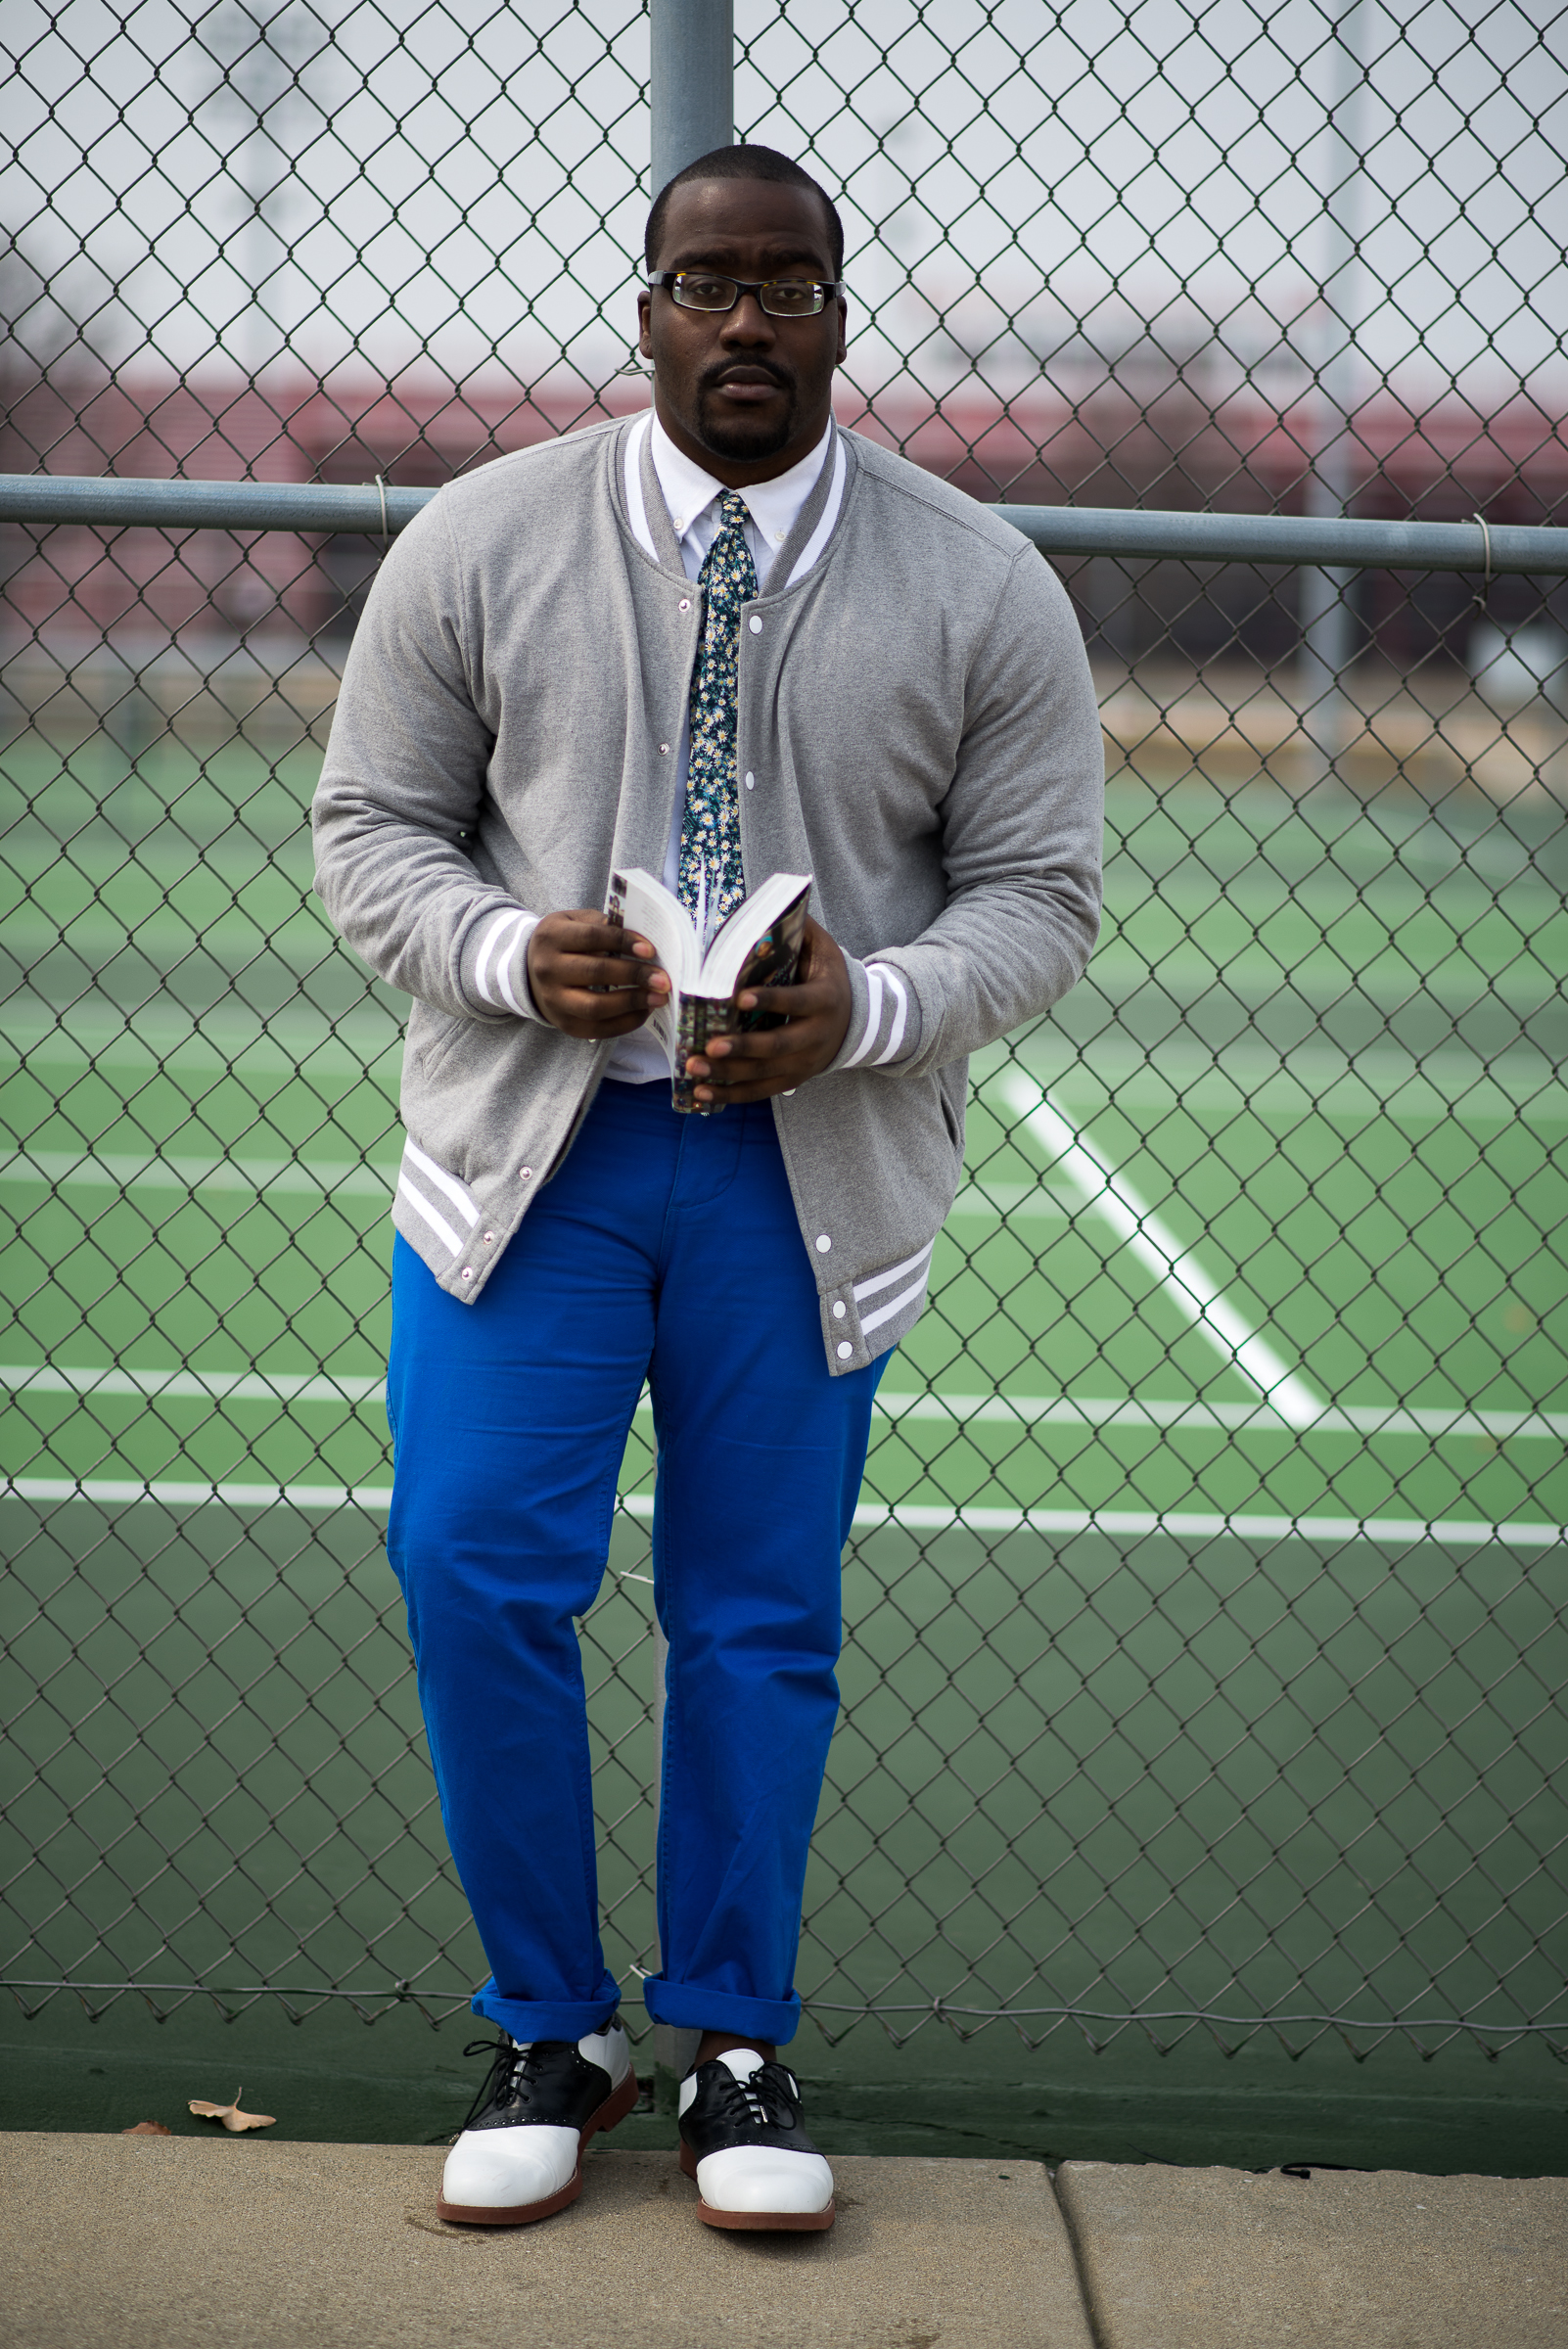 Isaiah Johnson | IUPUI  Baseball Jacket by American Rag for Macy's  Floral Tie - Thrifted  Electric Blue Chinos  Black and White contrast Saddle Shoes